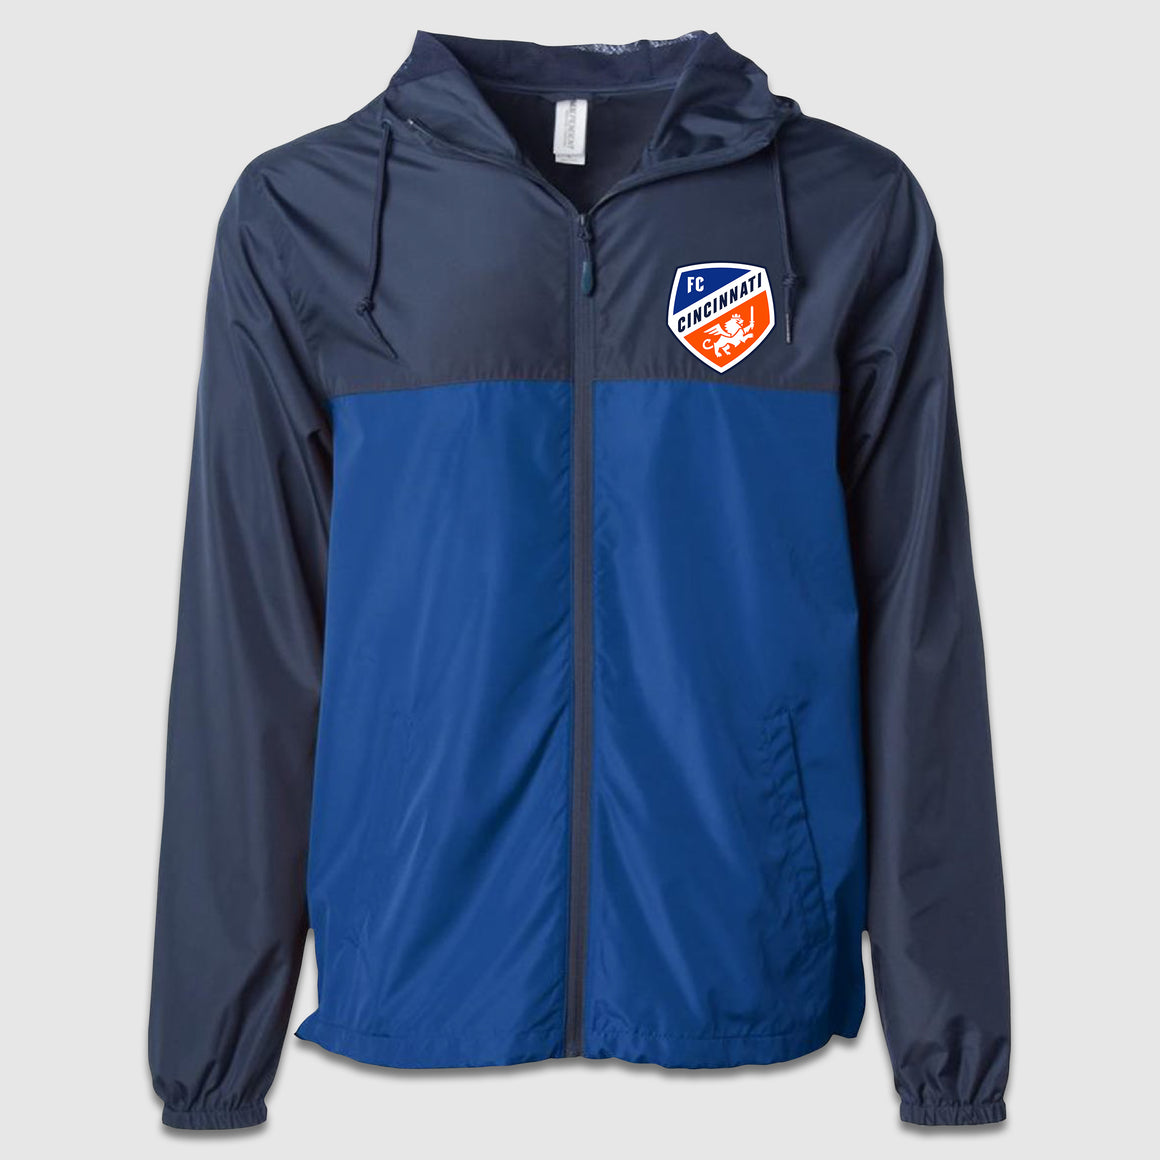 Full Zip FC Cincinnati Full Color Shield Royal/Navy Windbreaker Jacket - Cincy Shirts